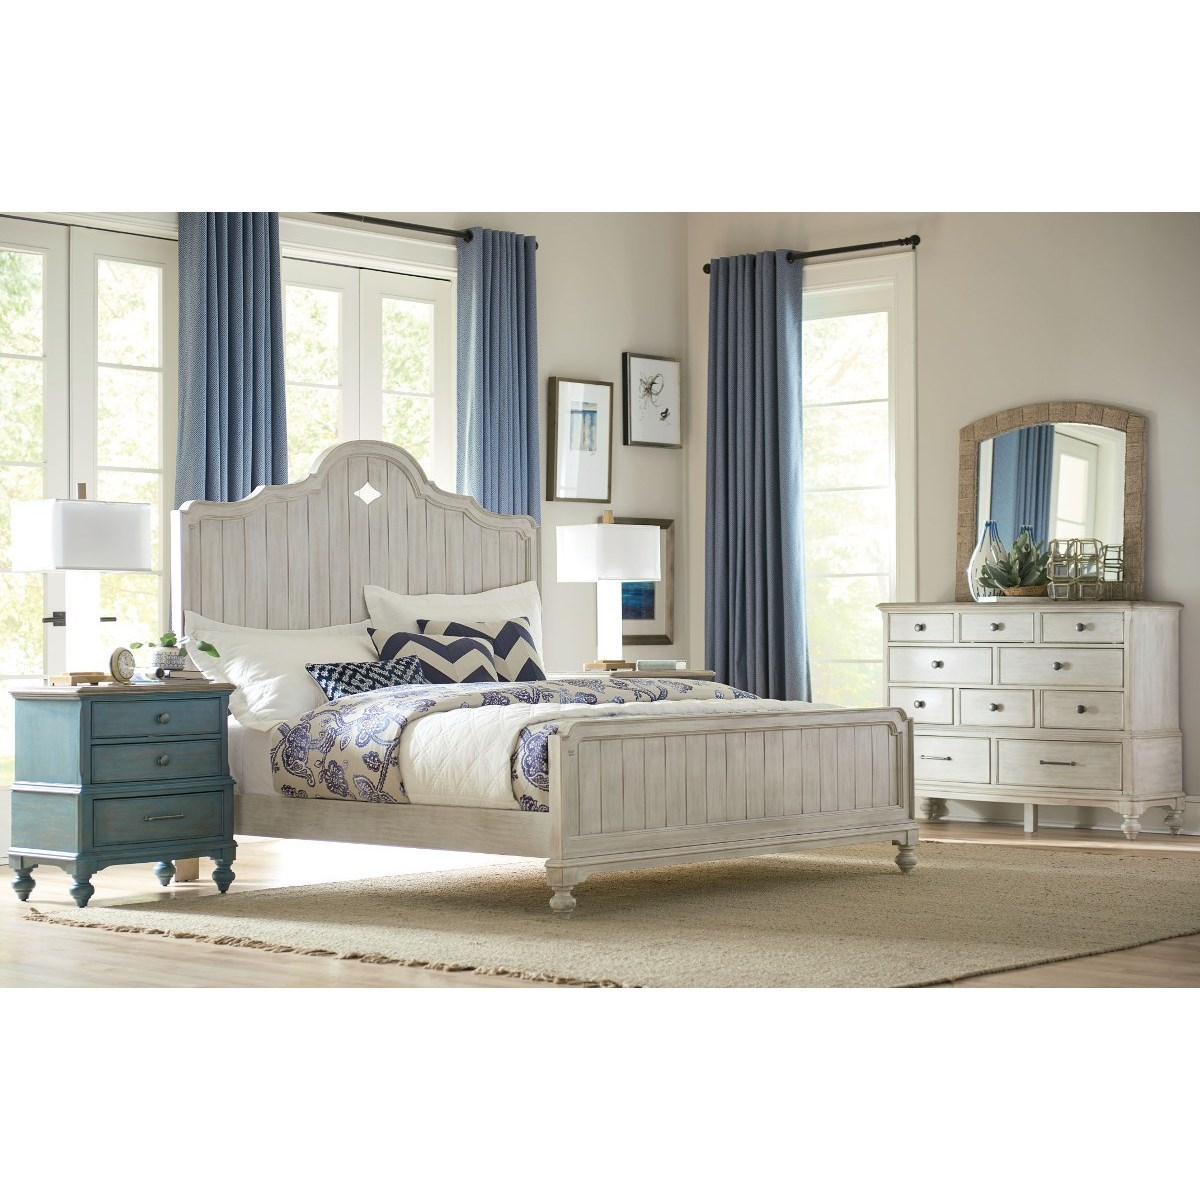 Litchfield Queen Bedroom Group by American Drew at Mueller Furniture